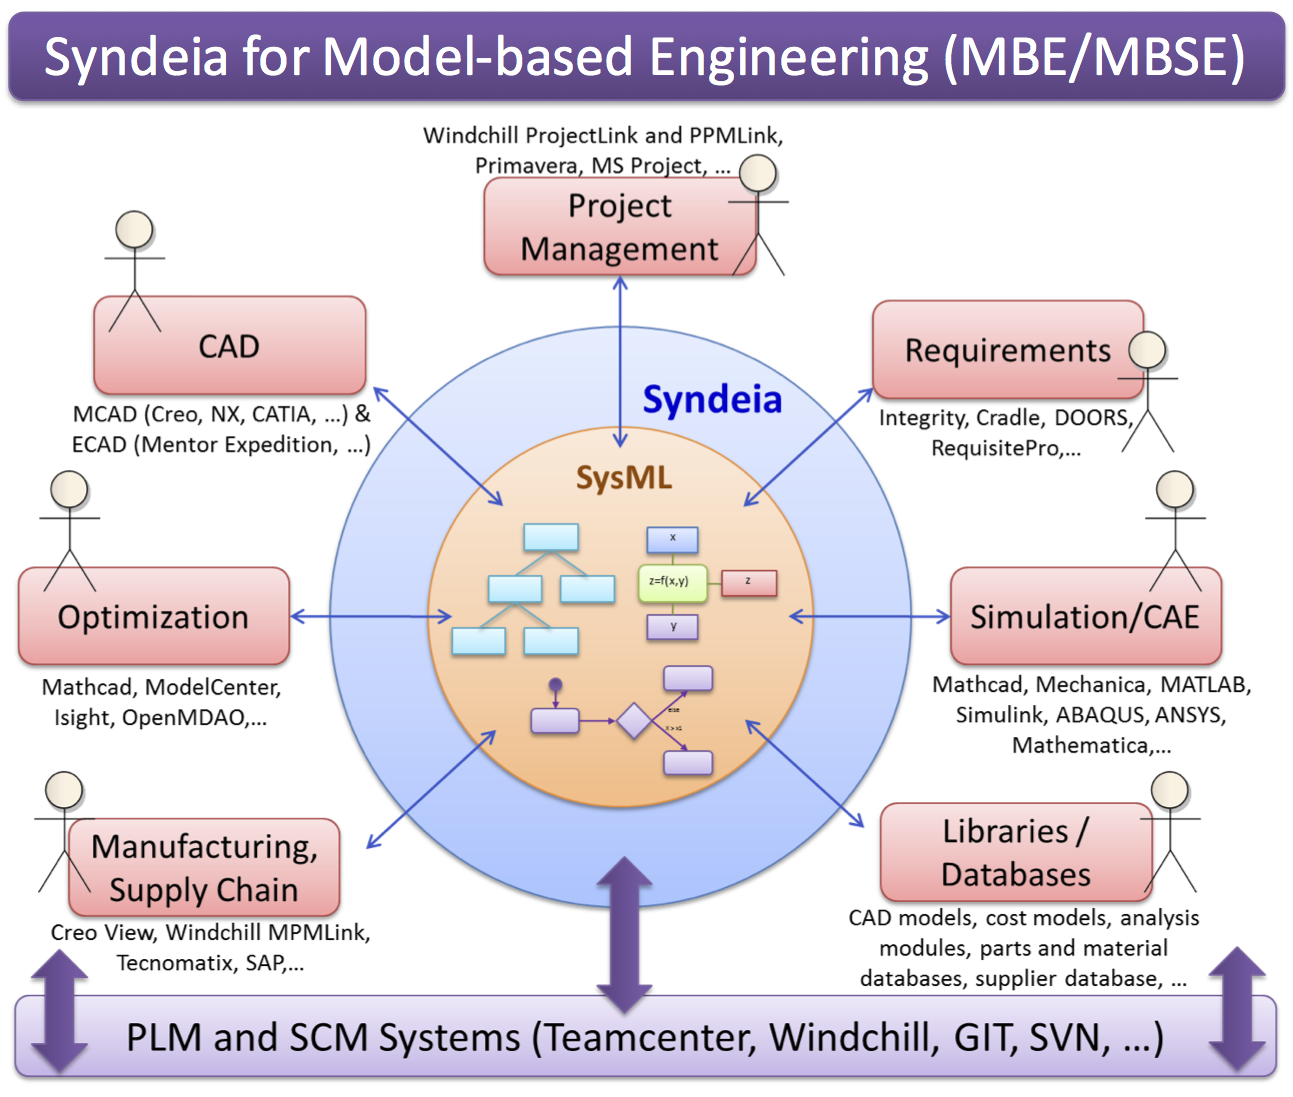 Syndeia_for_MBE_MBSE